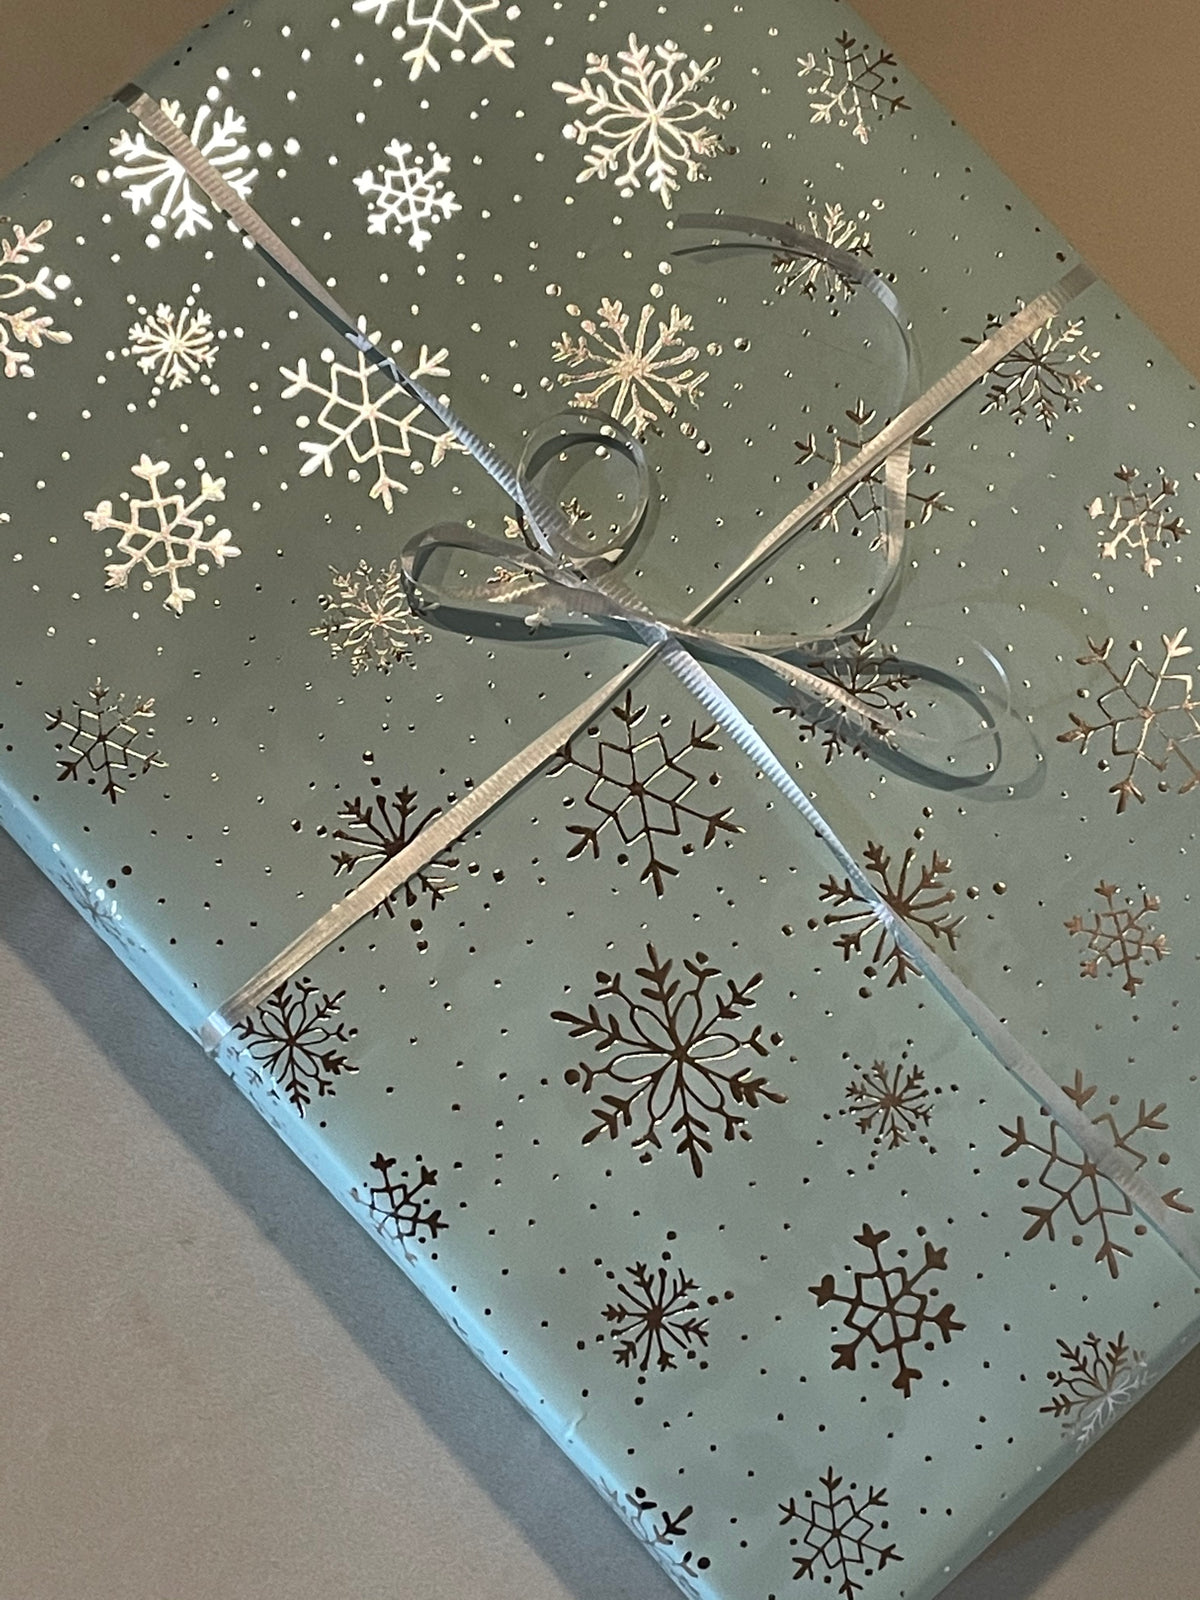 Gift Wrap It - Puzzlicious.com